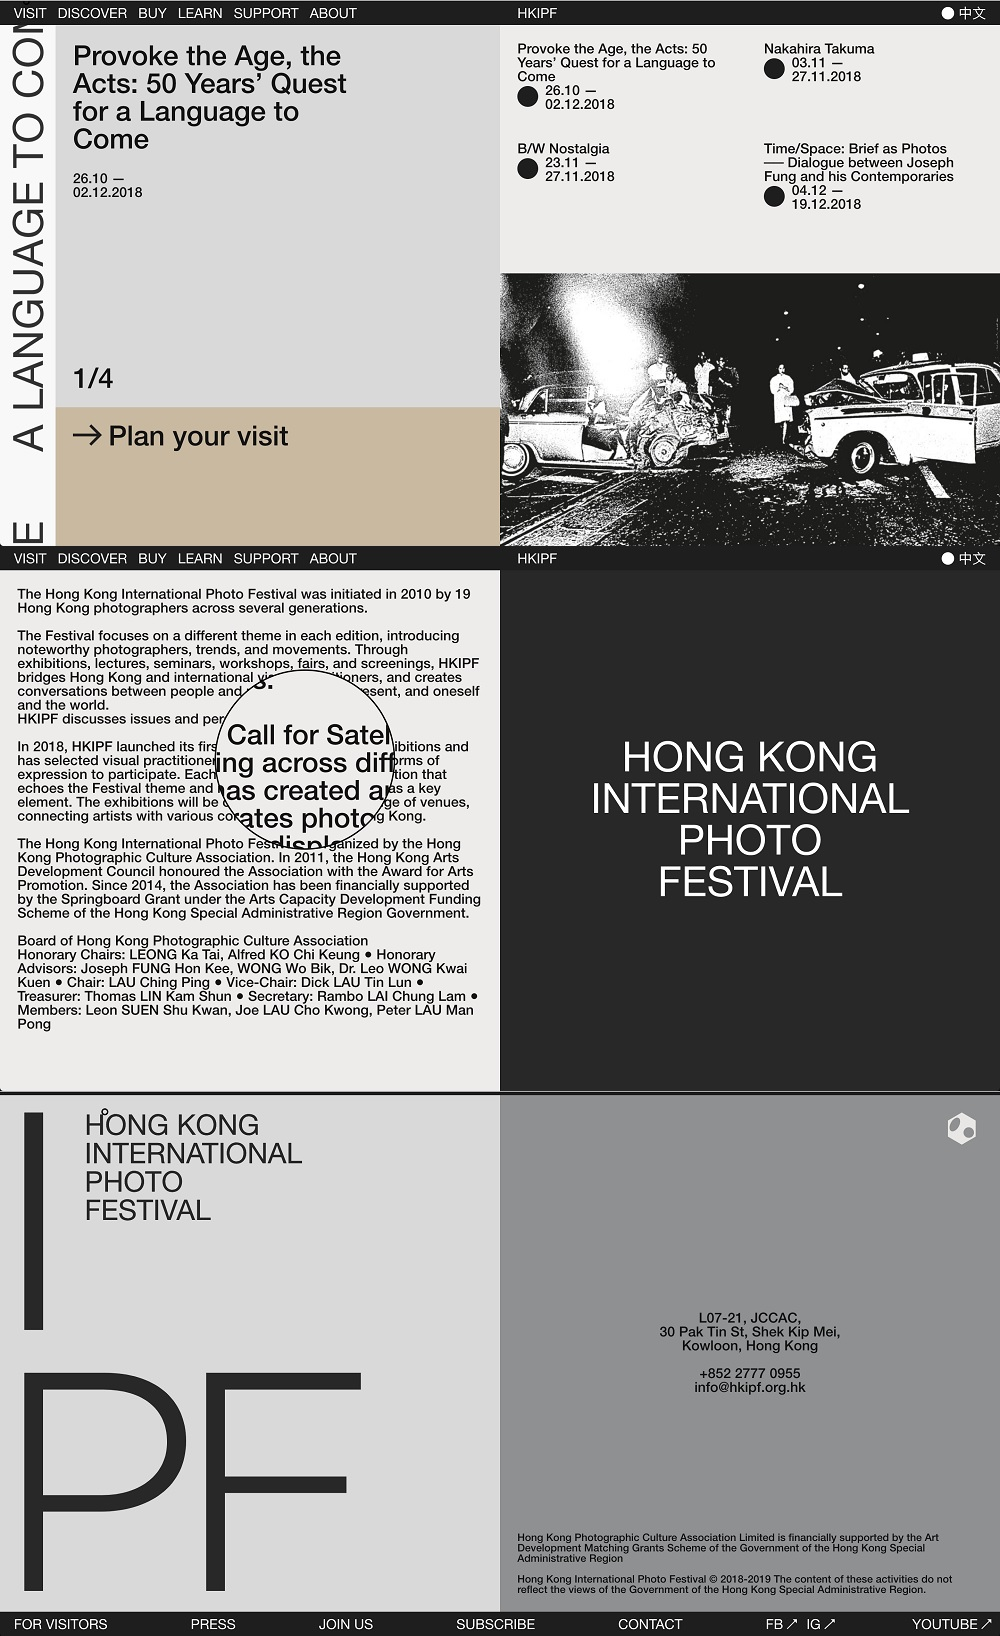 Hong Kong International Photo Festival, online, November 2018